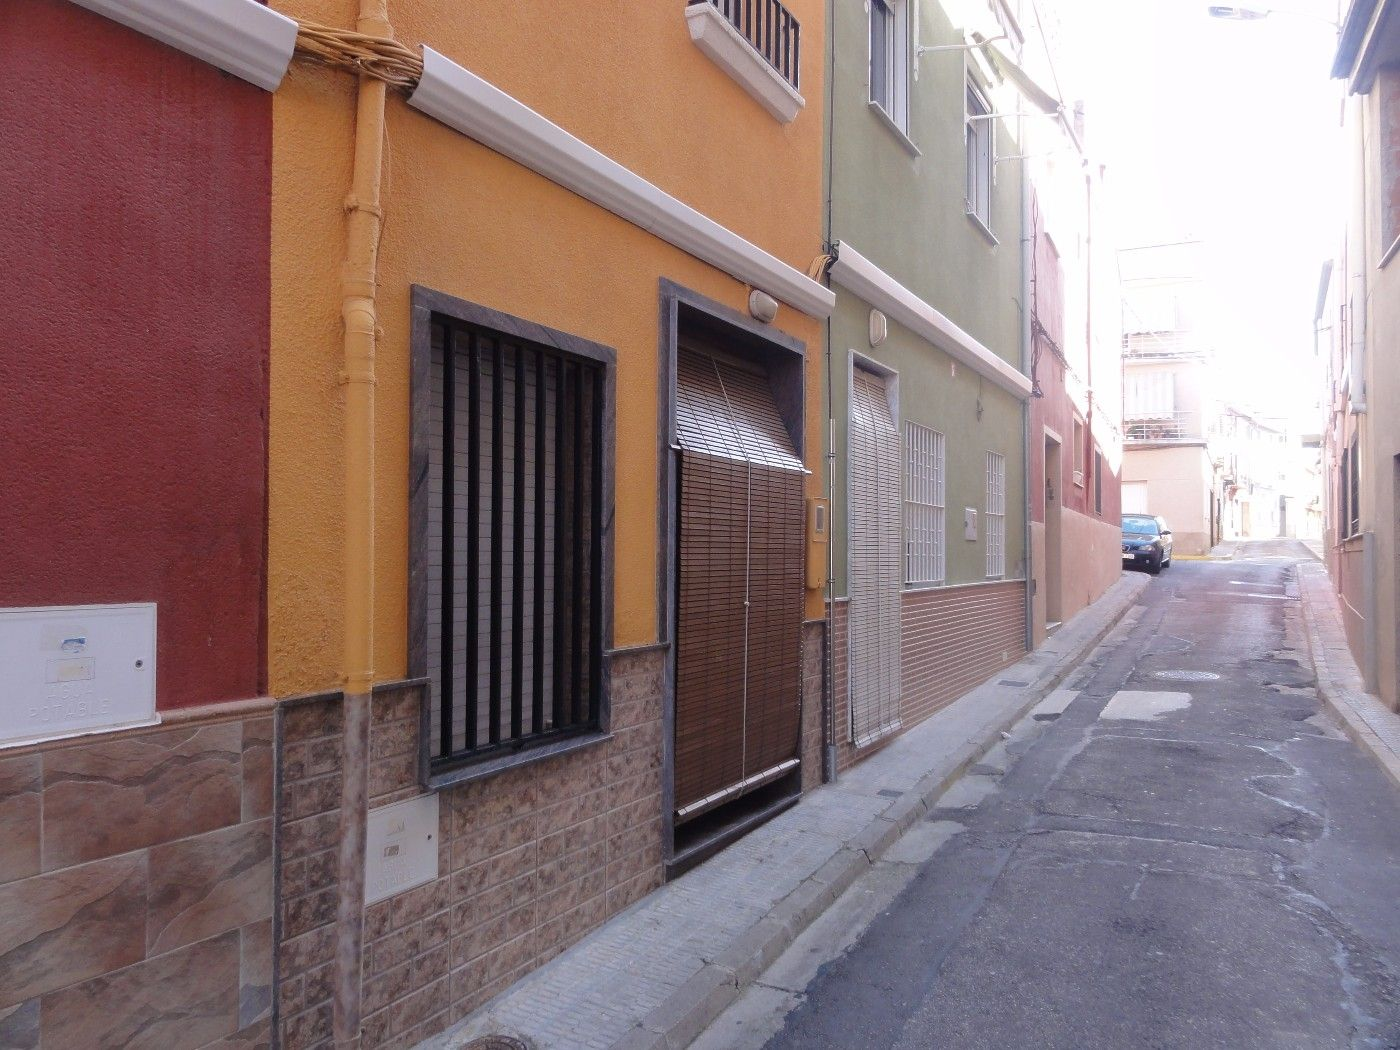 House in Calle san isidro, 4. Negociable - venta rápida